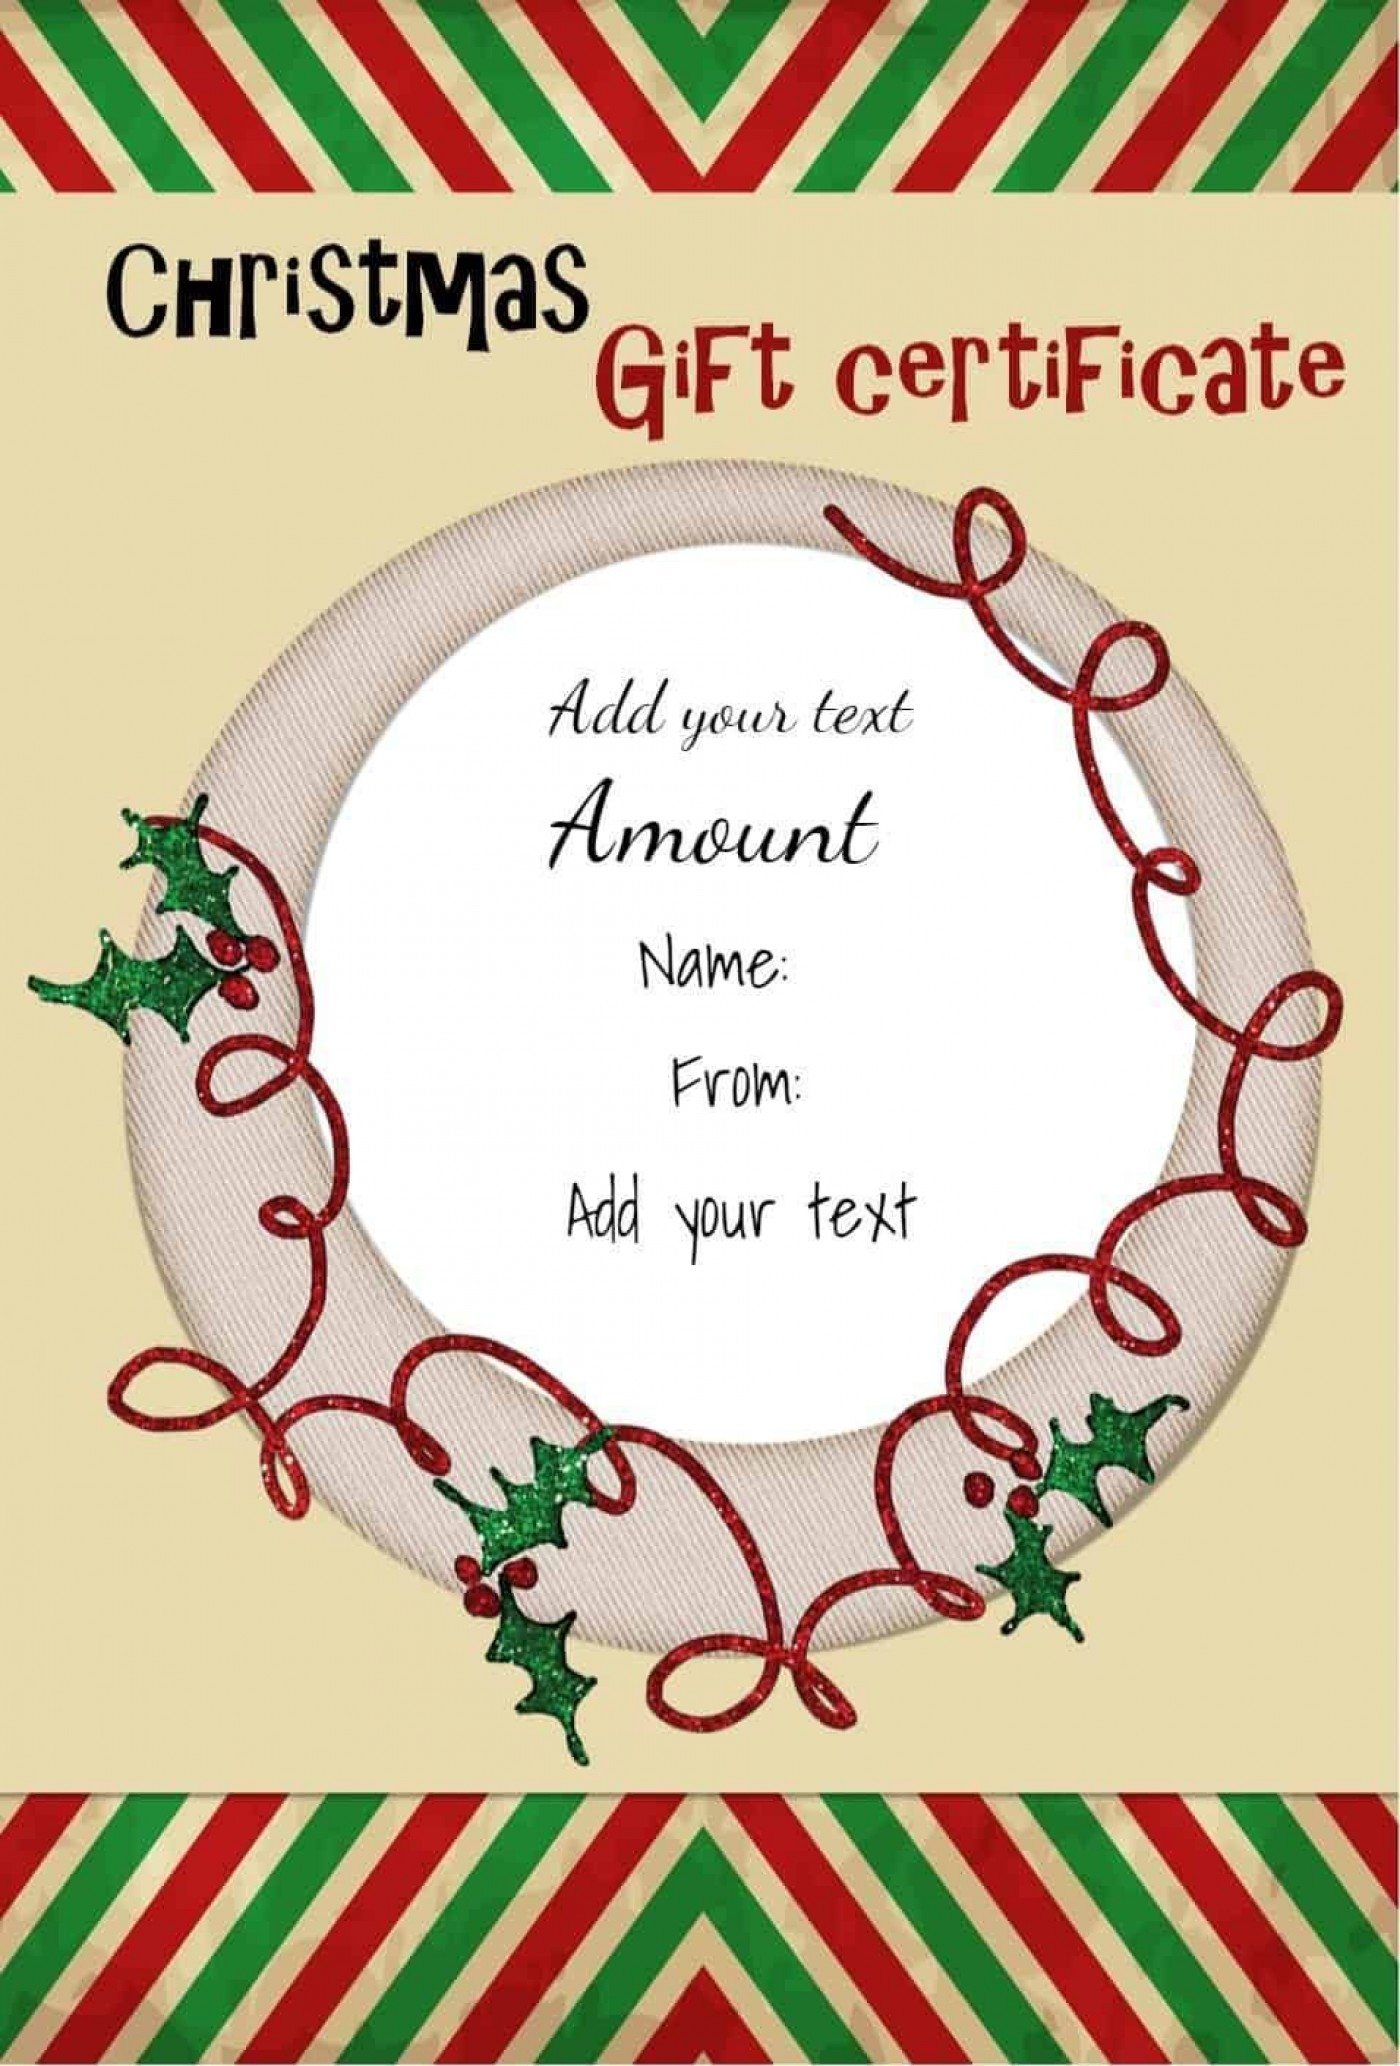 007 Fascinating Template For Christma Gift Certificate Free Idea  Voucher Uk Editable Download Microsoft Word1400